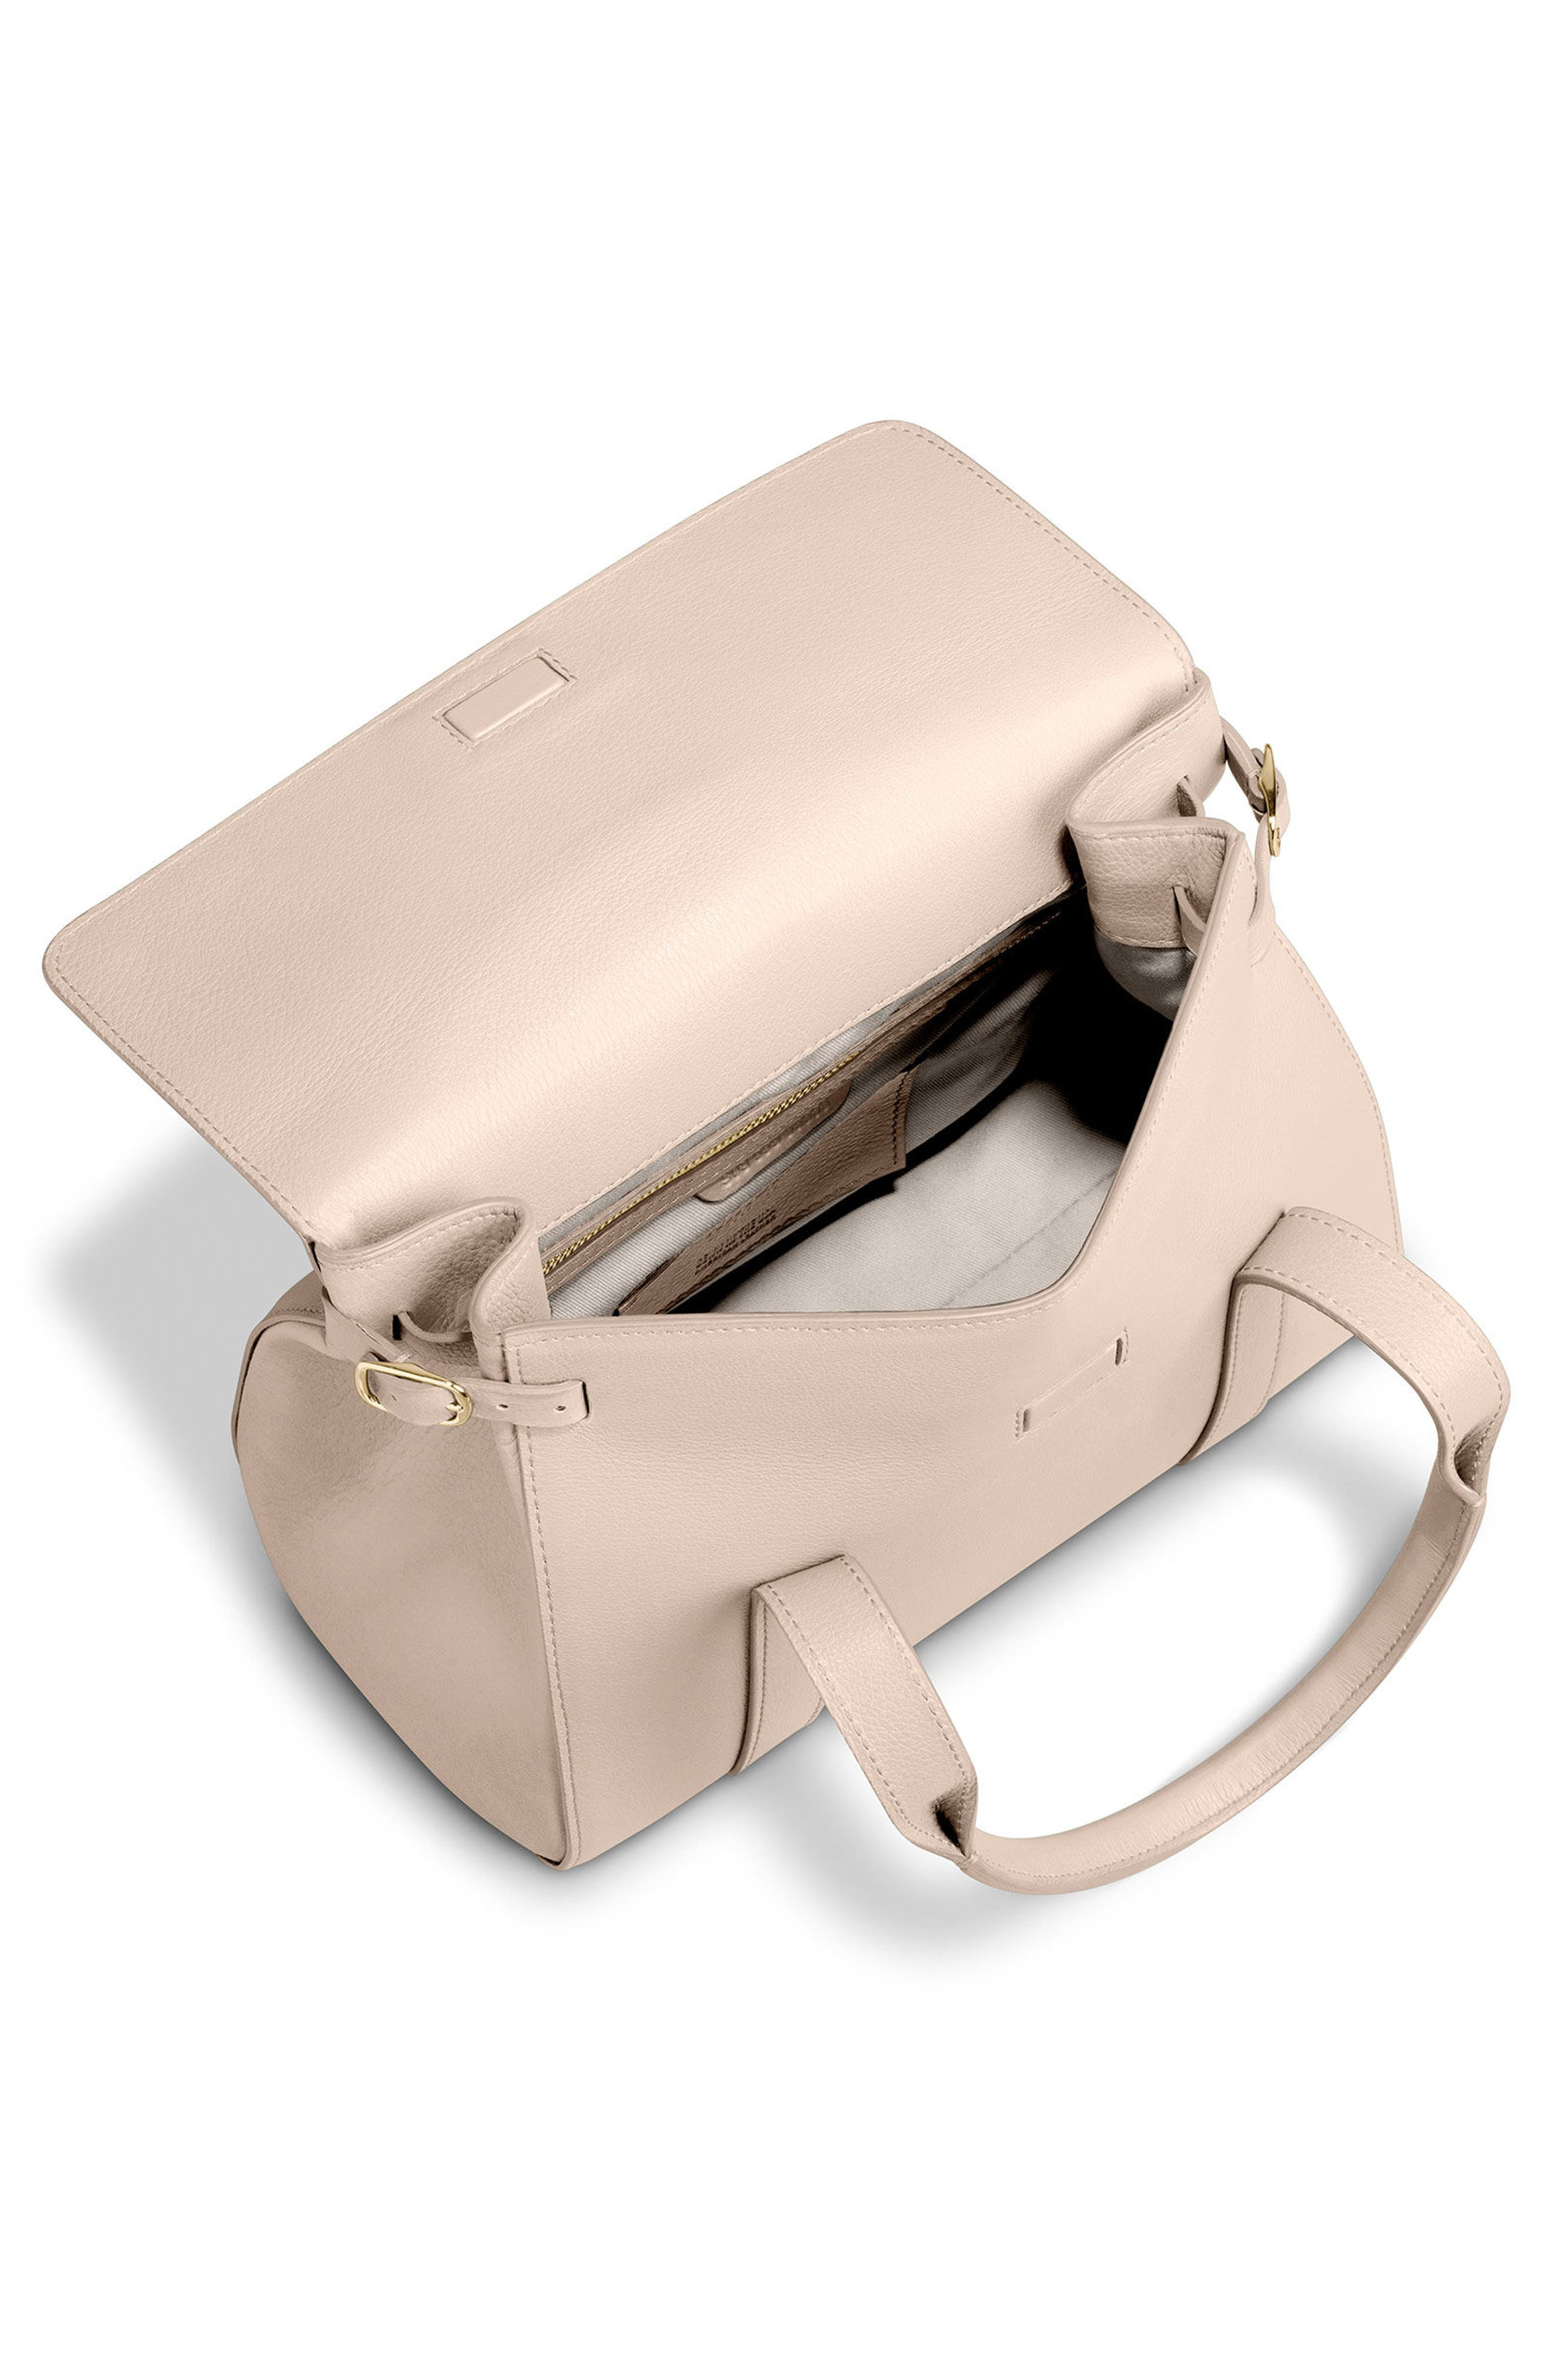 Small Grained Leather Satchel,                             Alternate thumbnail 4, color,                             SOFT BLUSH